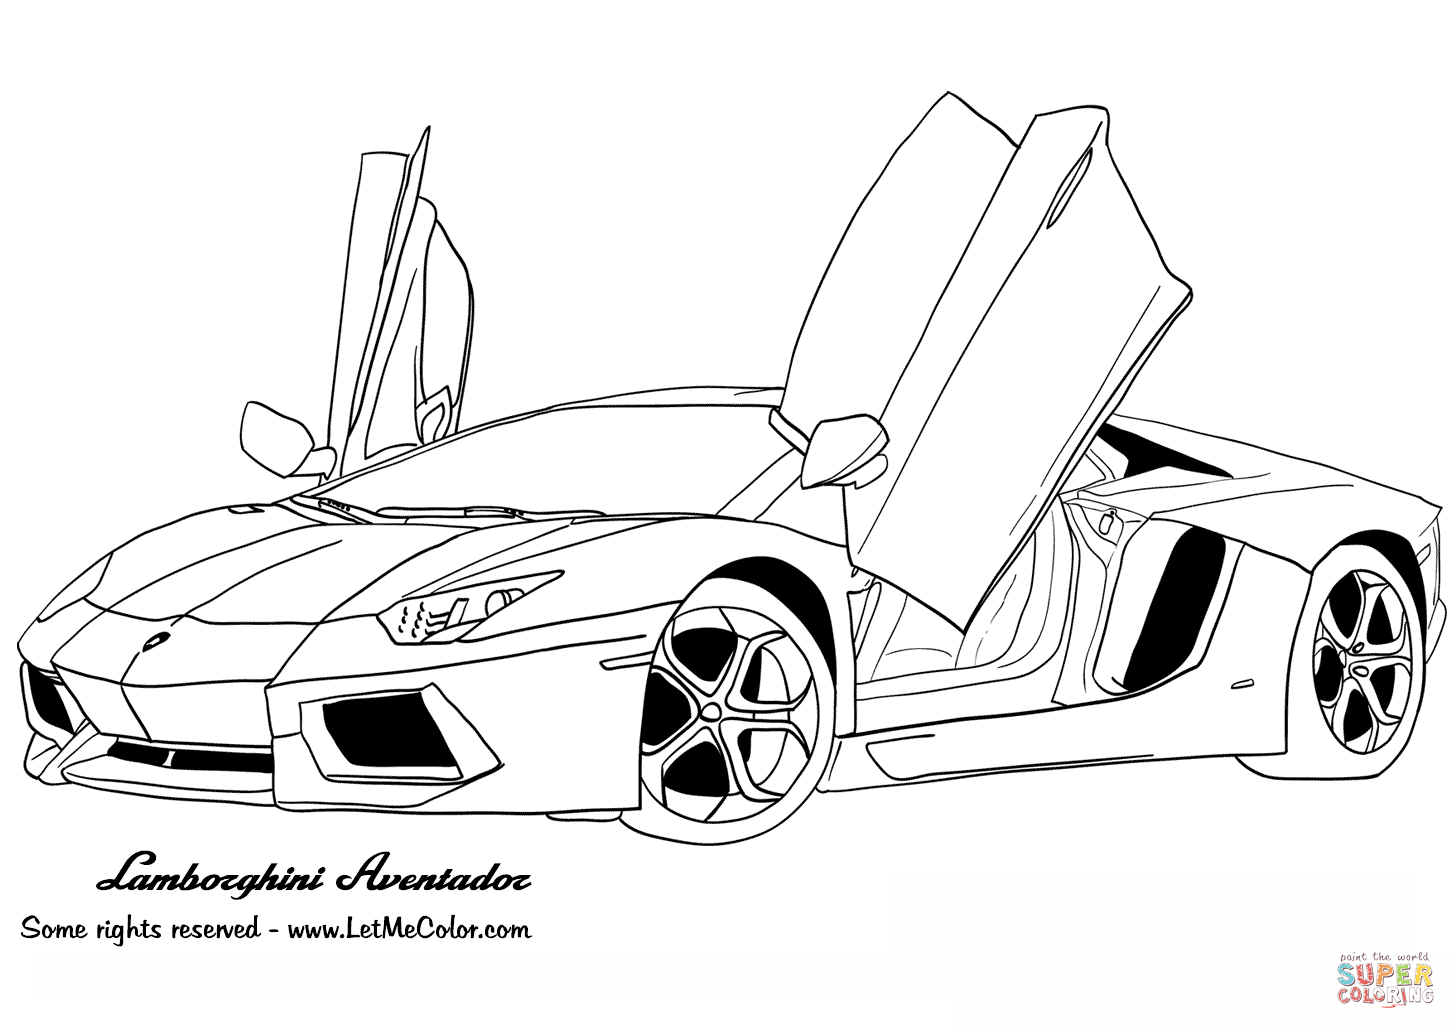 gtr coloring pages - photo#16